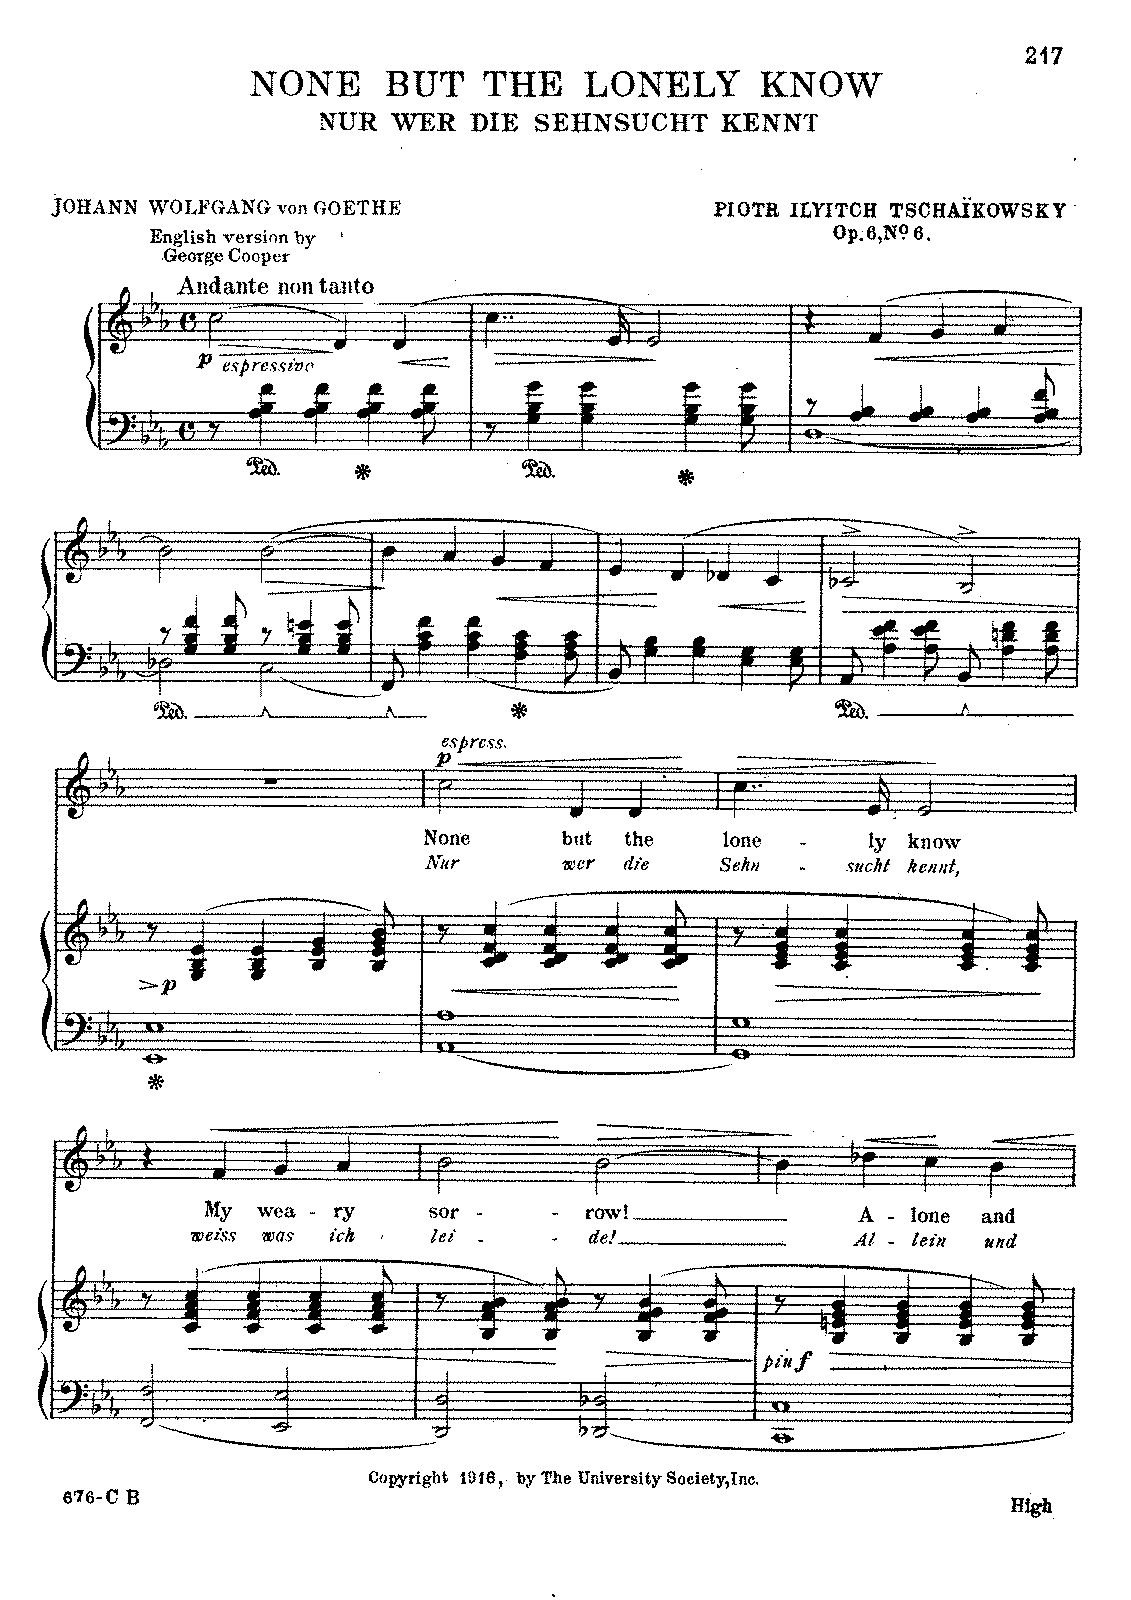 Tchaikovsky - 'None but the Lonely Know,' Op. 6, No. 6.pdf